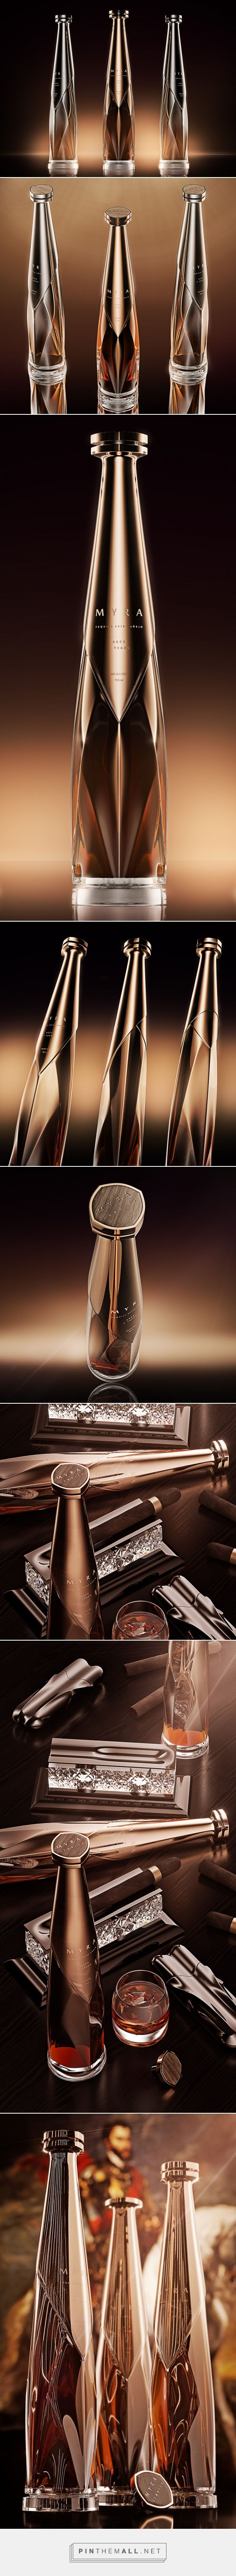 Myra Tequila - Packaging of the World - Creative Package Design Gallery - http://www.packagingoftheworld.com/2017/12/myra.html